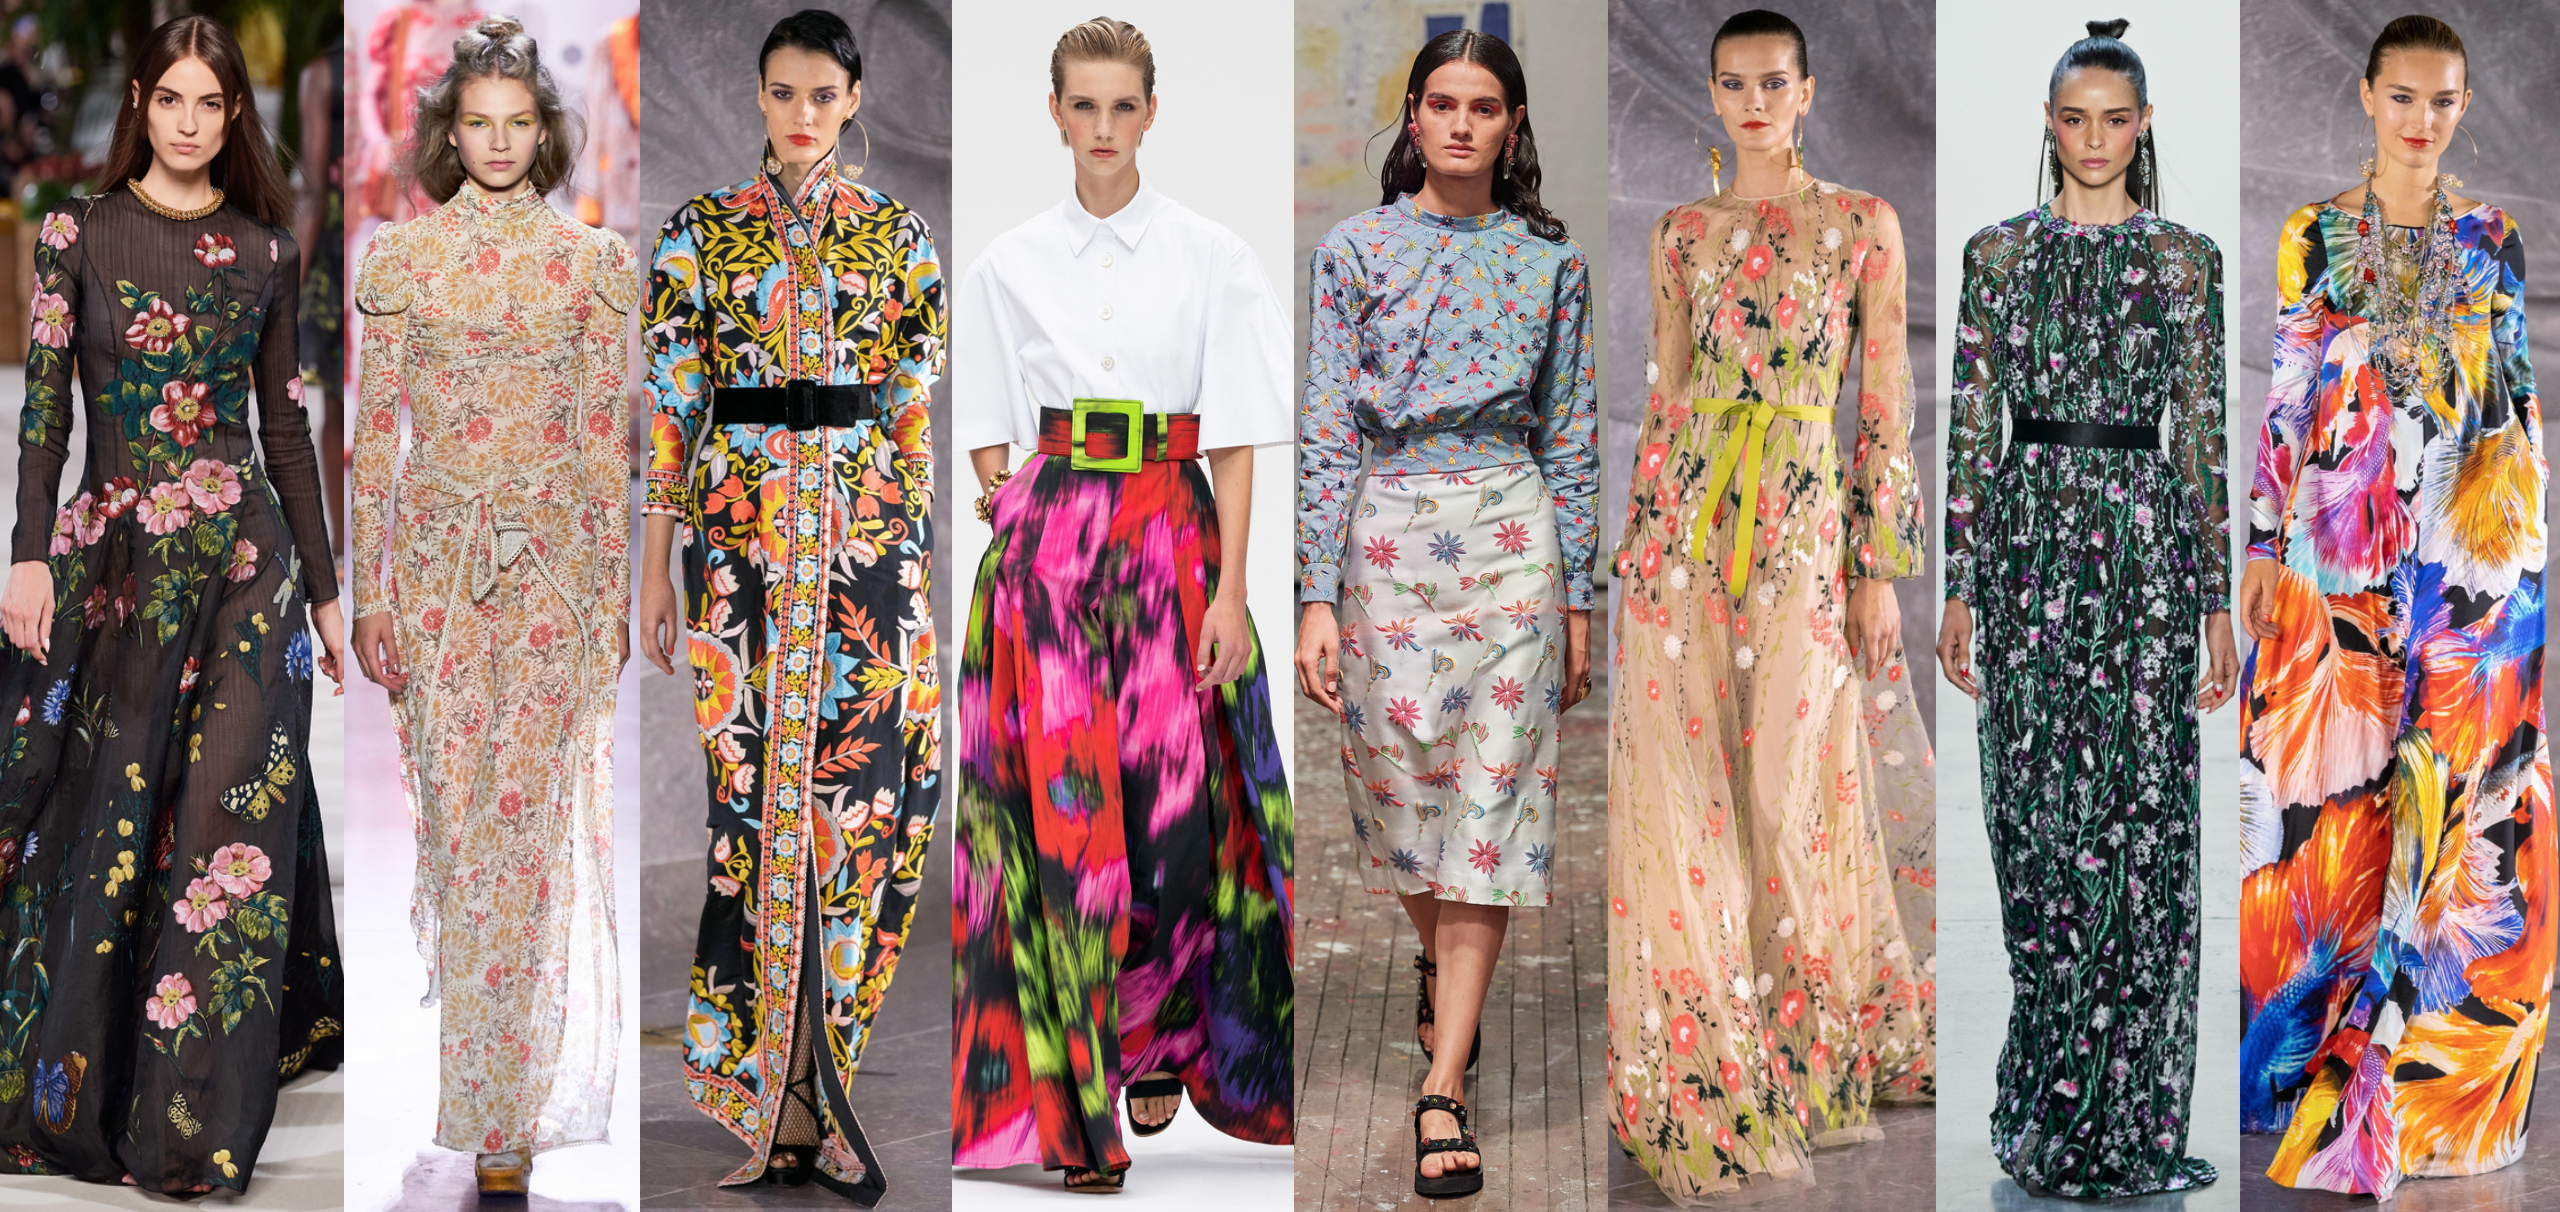 Spring Trends 2020.The Top Ten Modest Trends From Spring 2020 Fashion Week